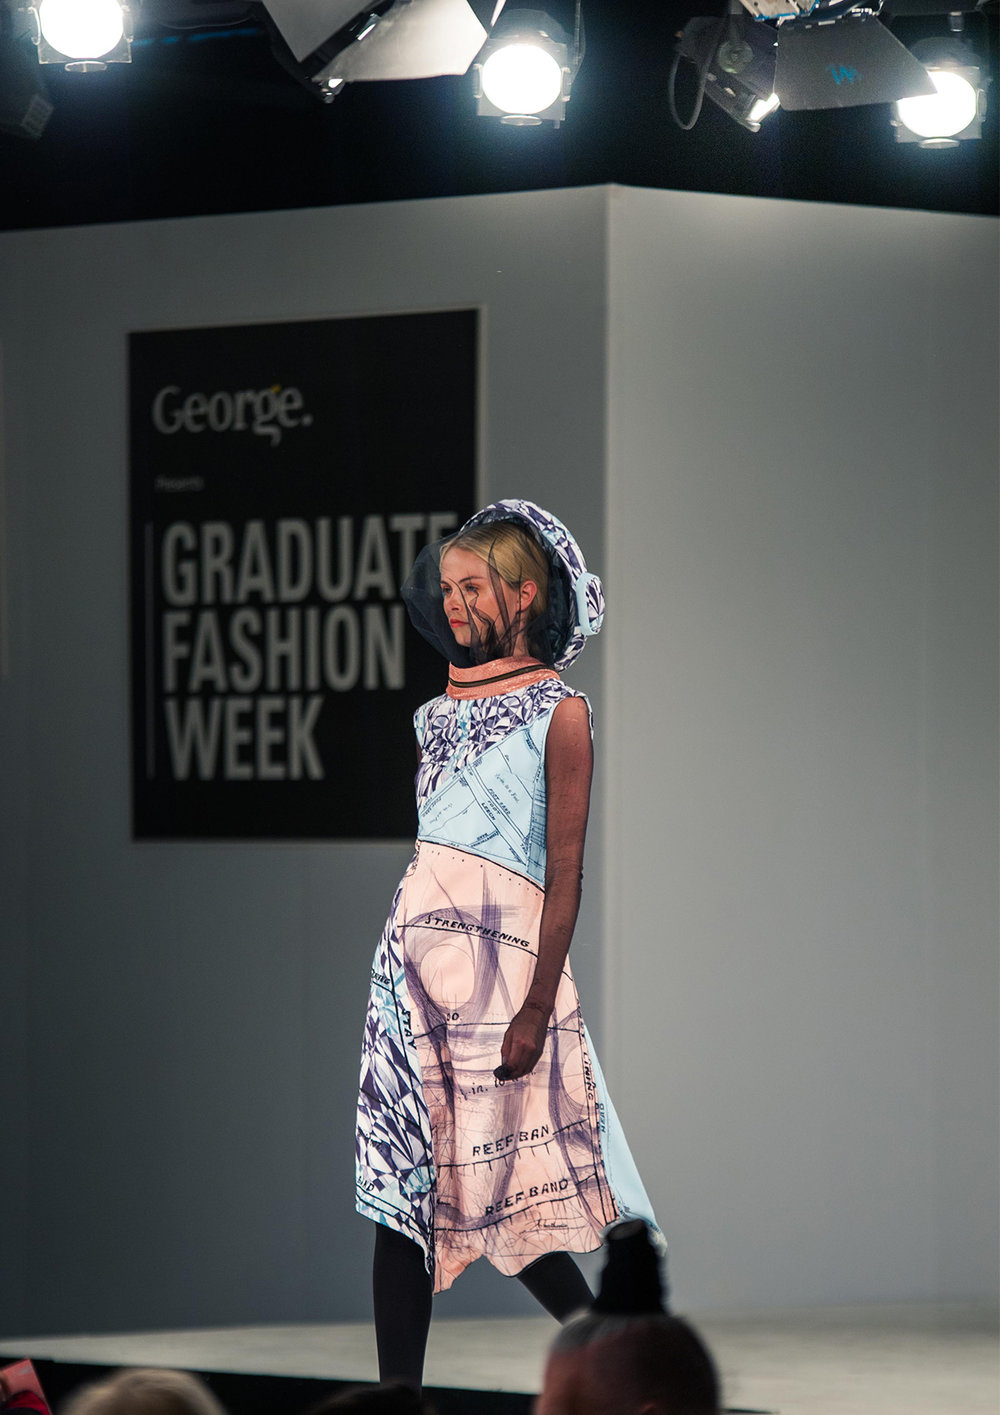 Graduate Fashion Week - Including photos form the Gala show